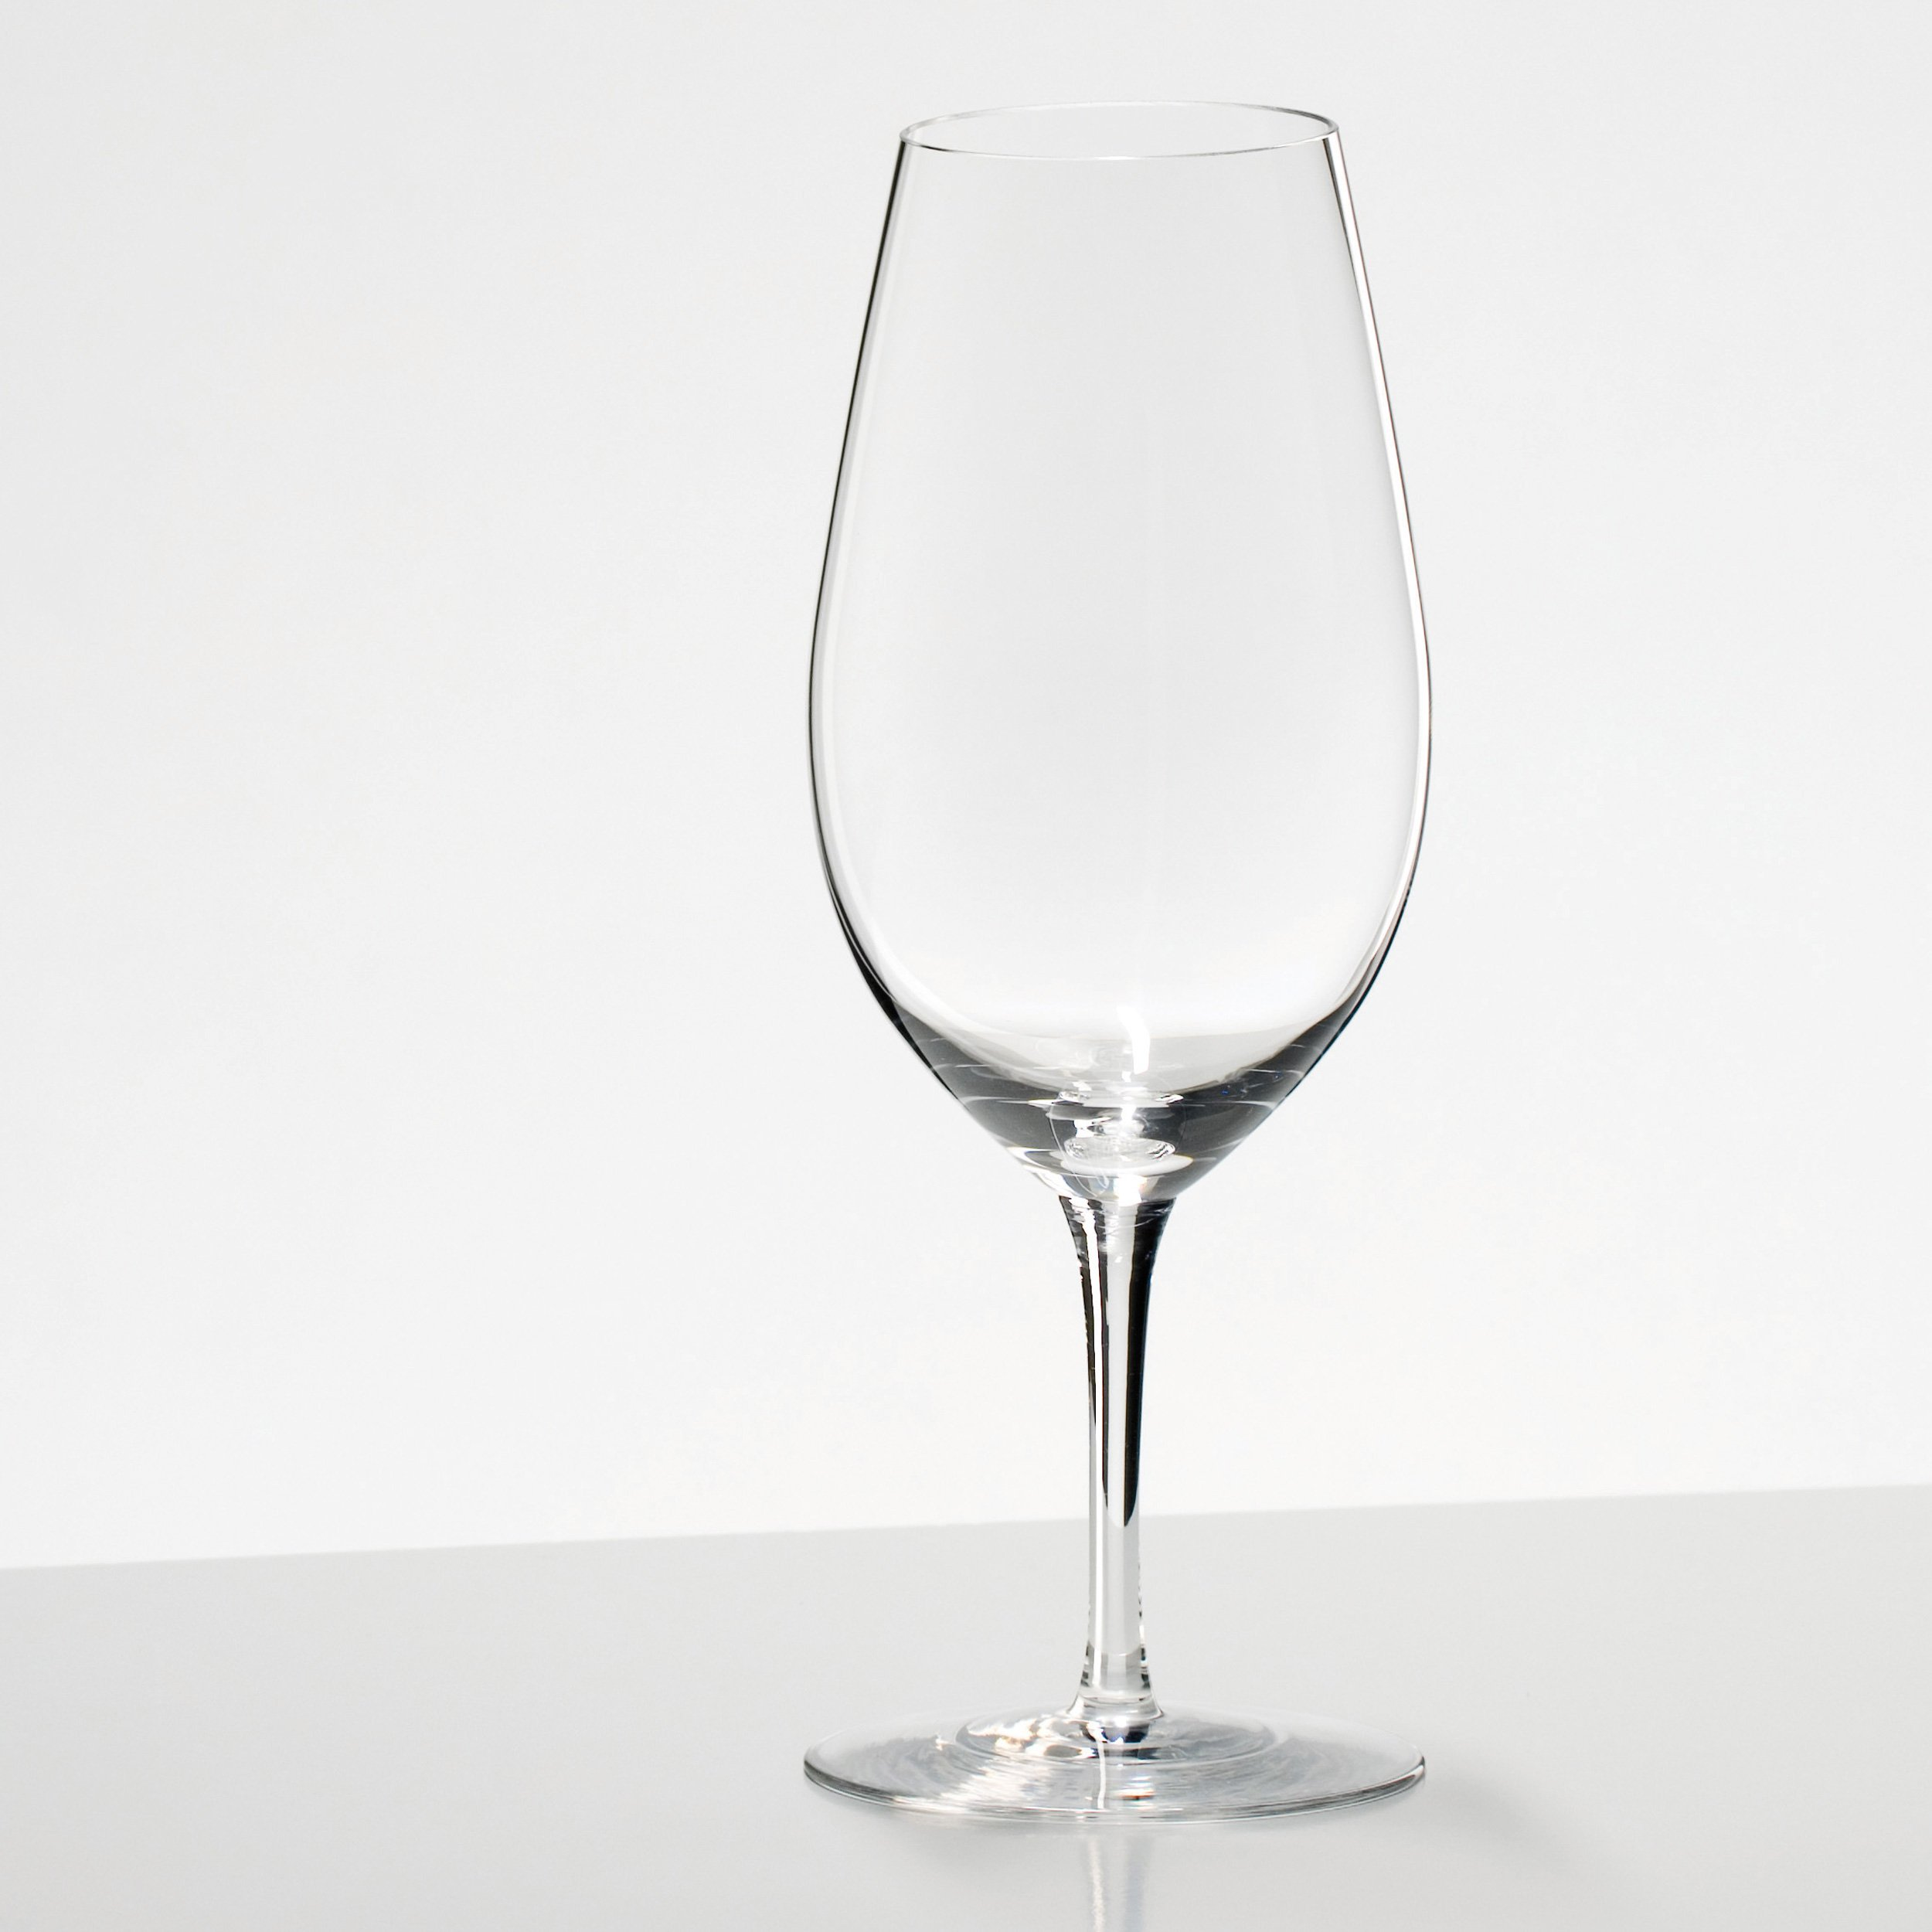 Riedel Sommeliers 8.75 Ounce Vintage Port Wine Glass, Set of 2